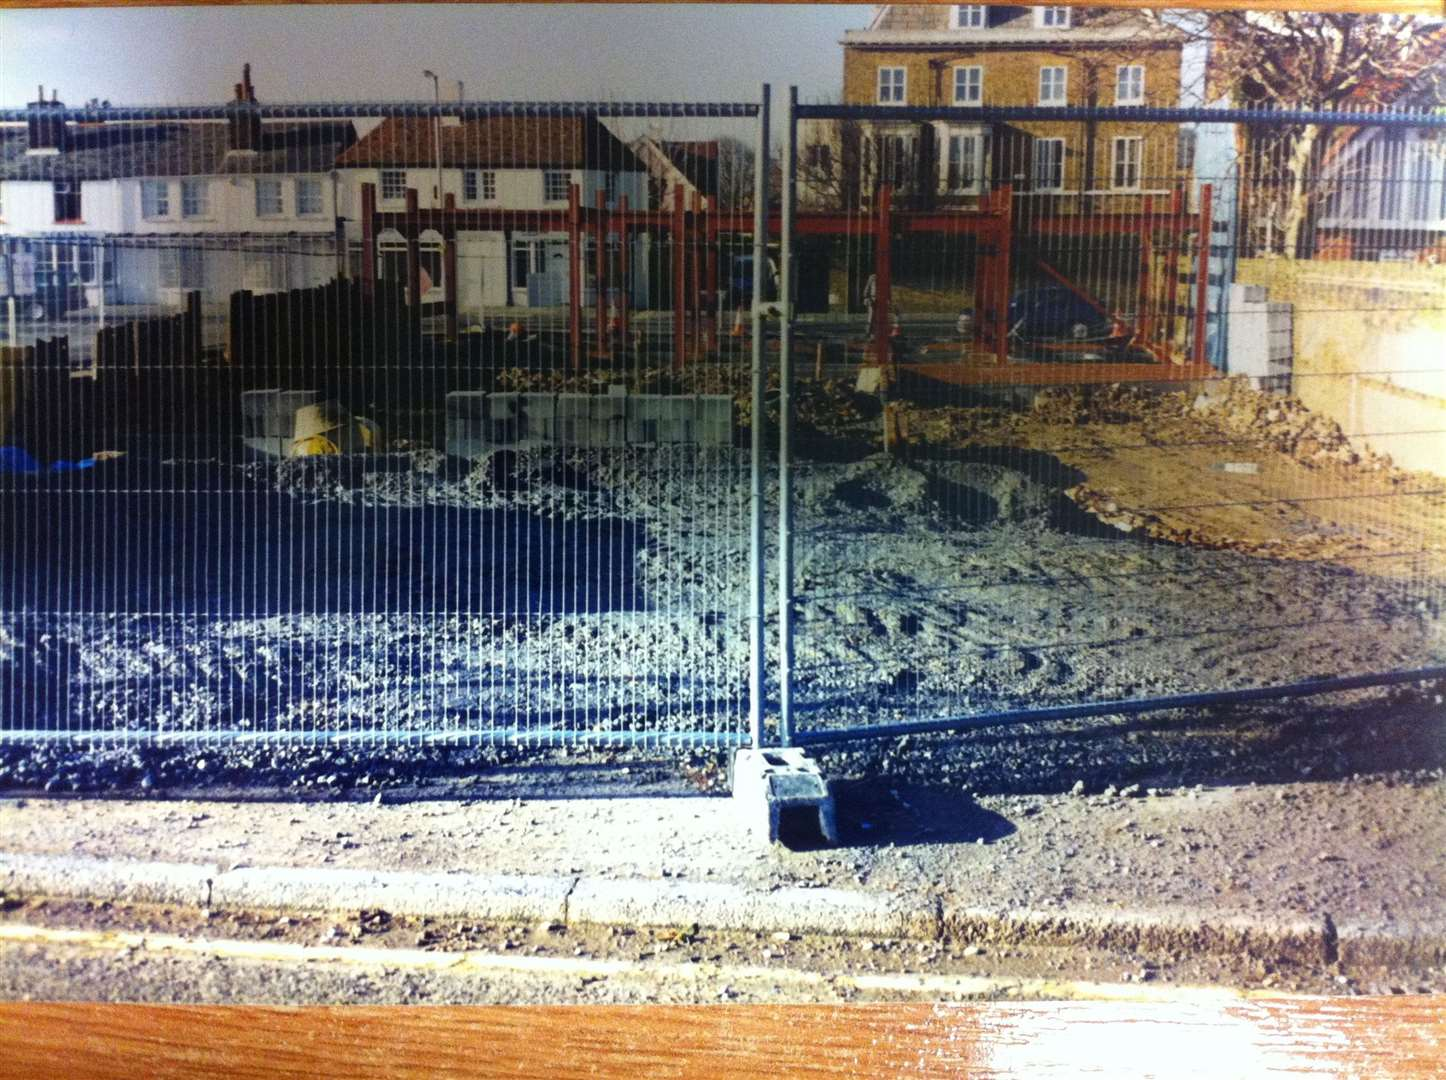 The Royal Marines swimming pool in Deal was demolished to make way for Cedars Surgery